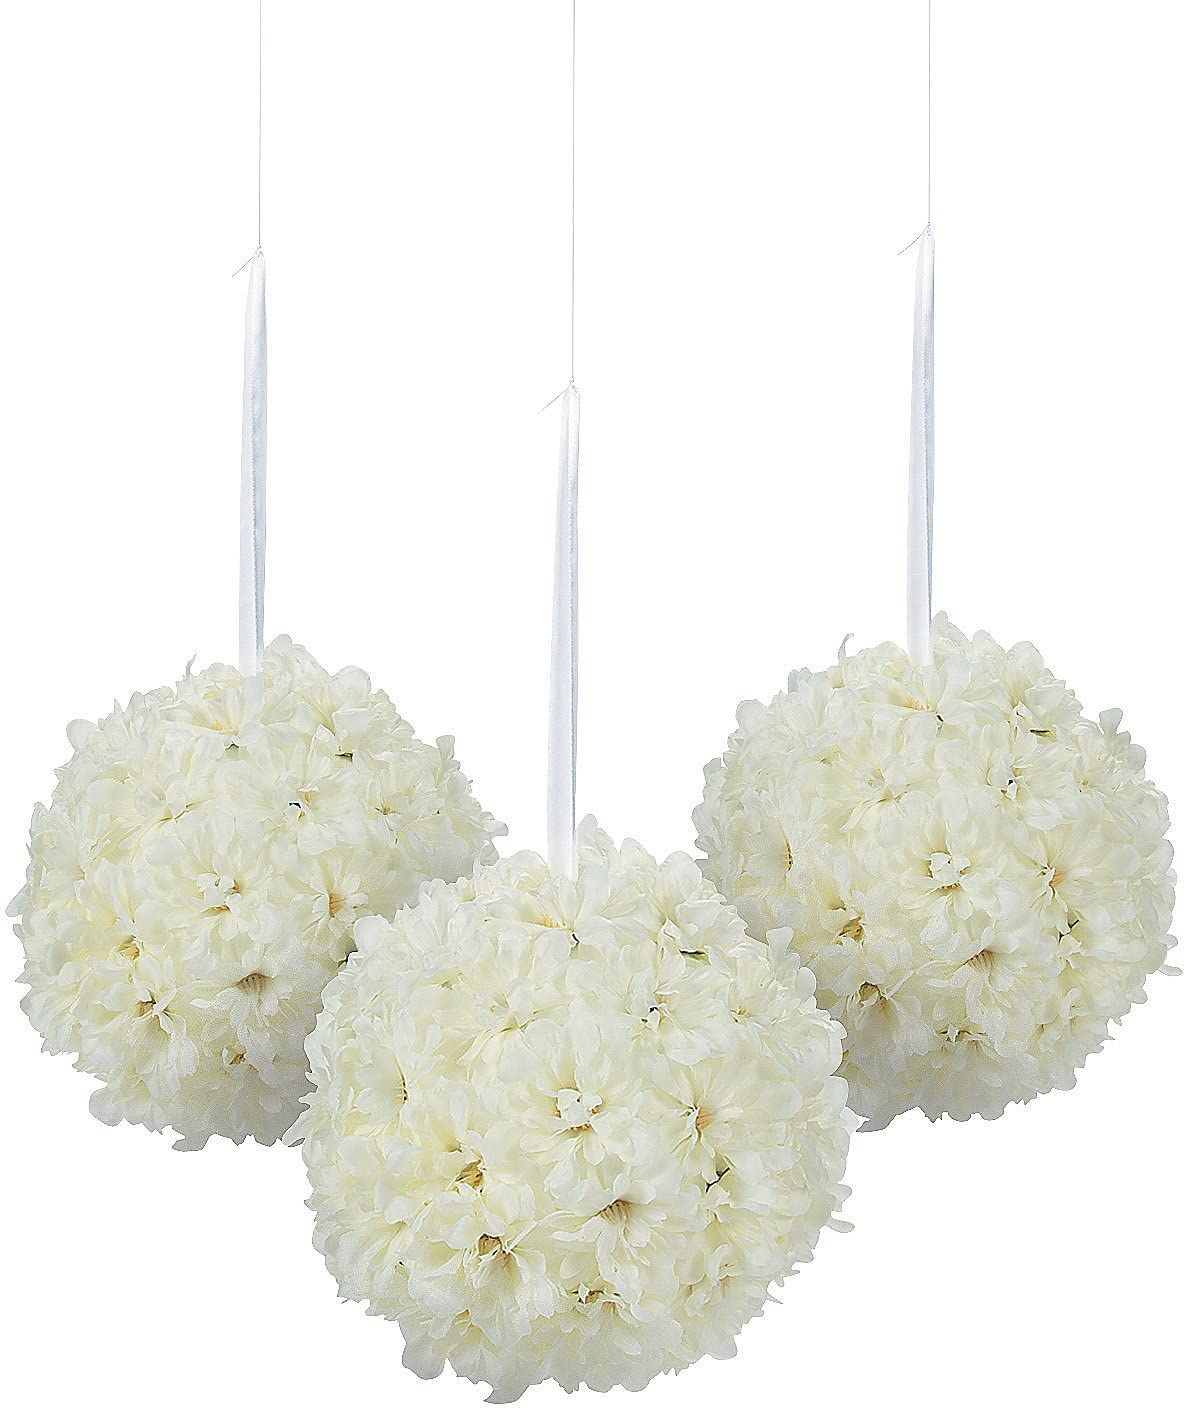 Hydrangea Pomander Kissing Balls - Set of 3 Pieces, Each is 6.5 inch - Wedding and Home Decor